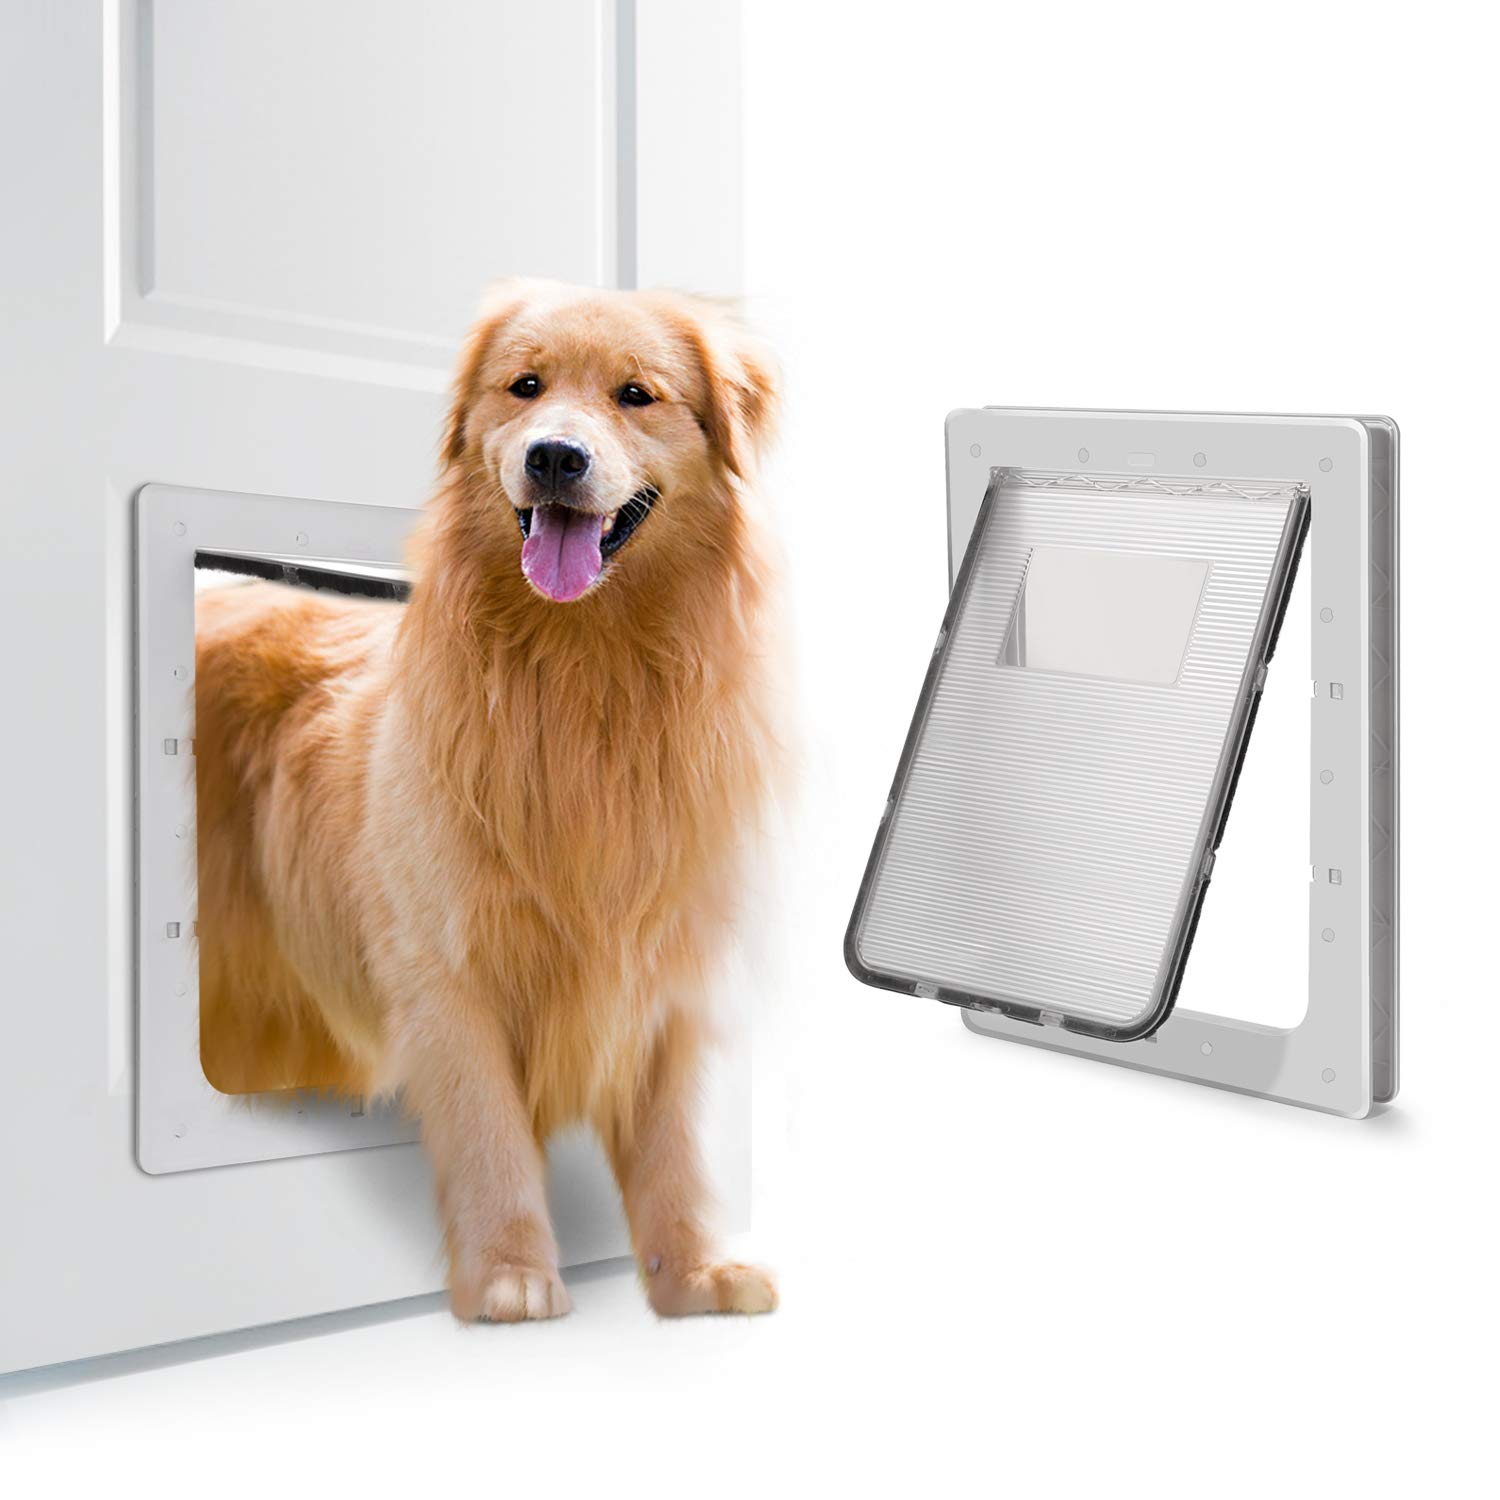 OWNPETS Pet Door, X-Large Pet Wall Doors with Plastic Flap Door, Size 16.7''X14.6''X1.77'' Pet Screen Door, Fit Small, Large and Extra Large Dogs (White) by OWNPETS